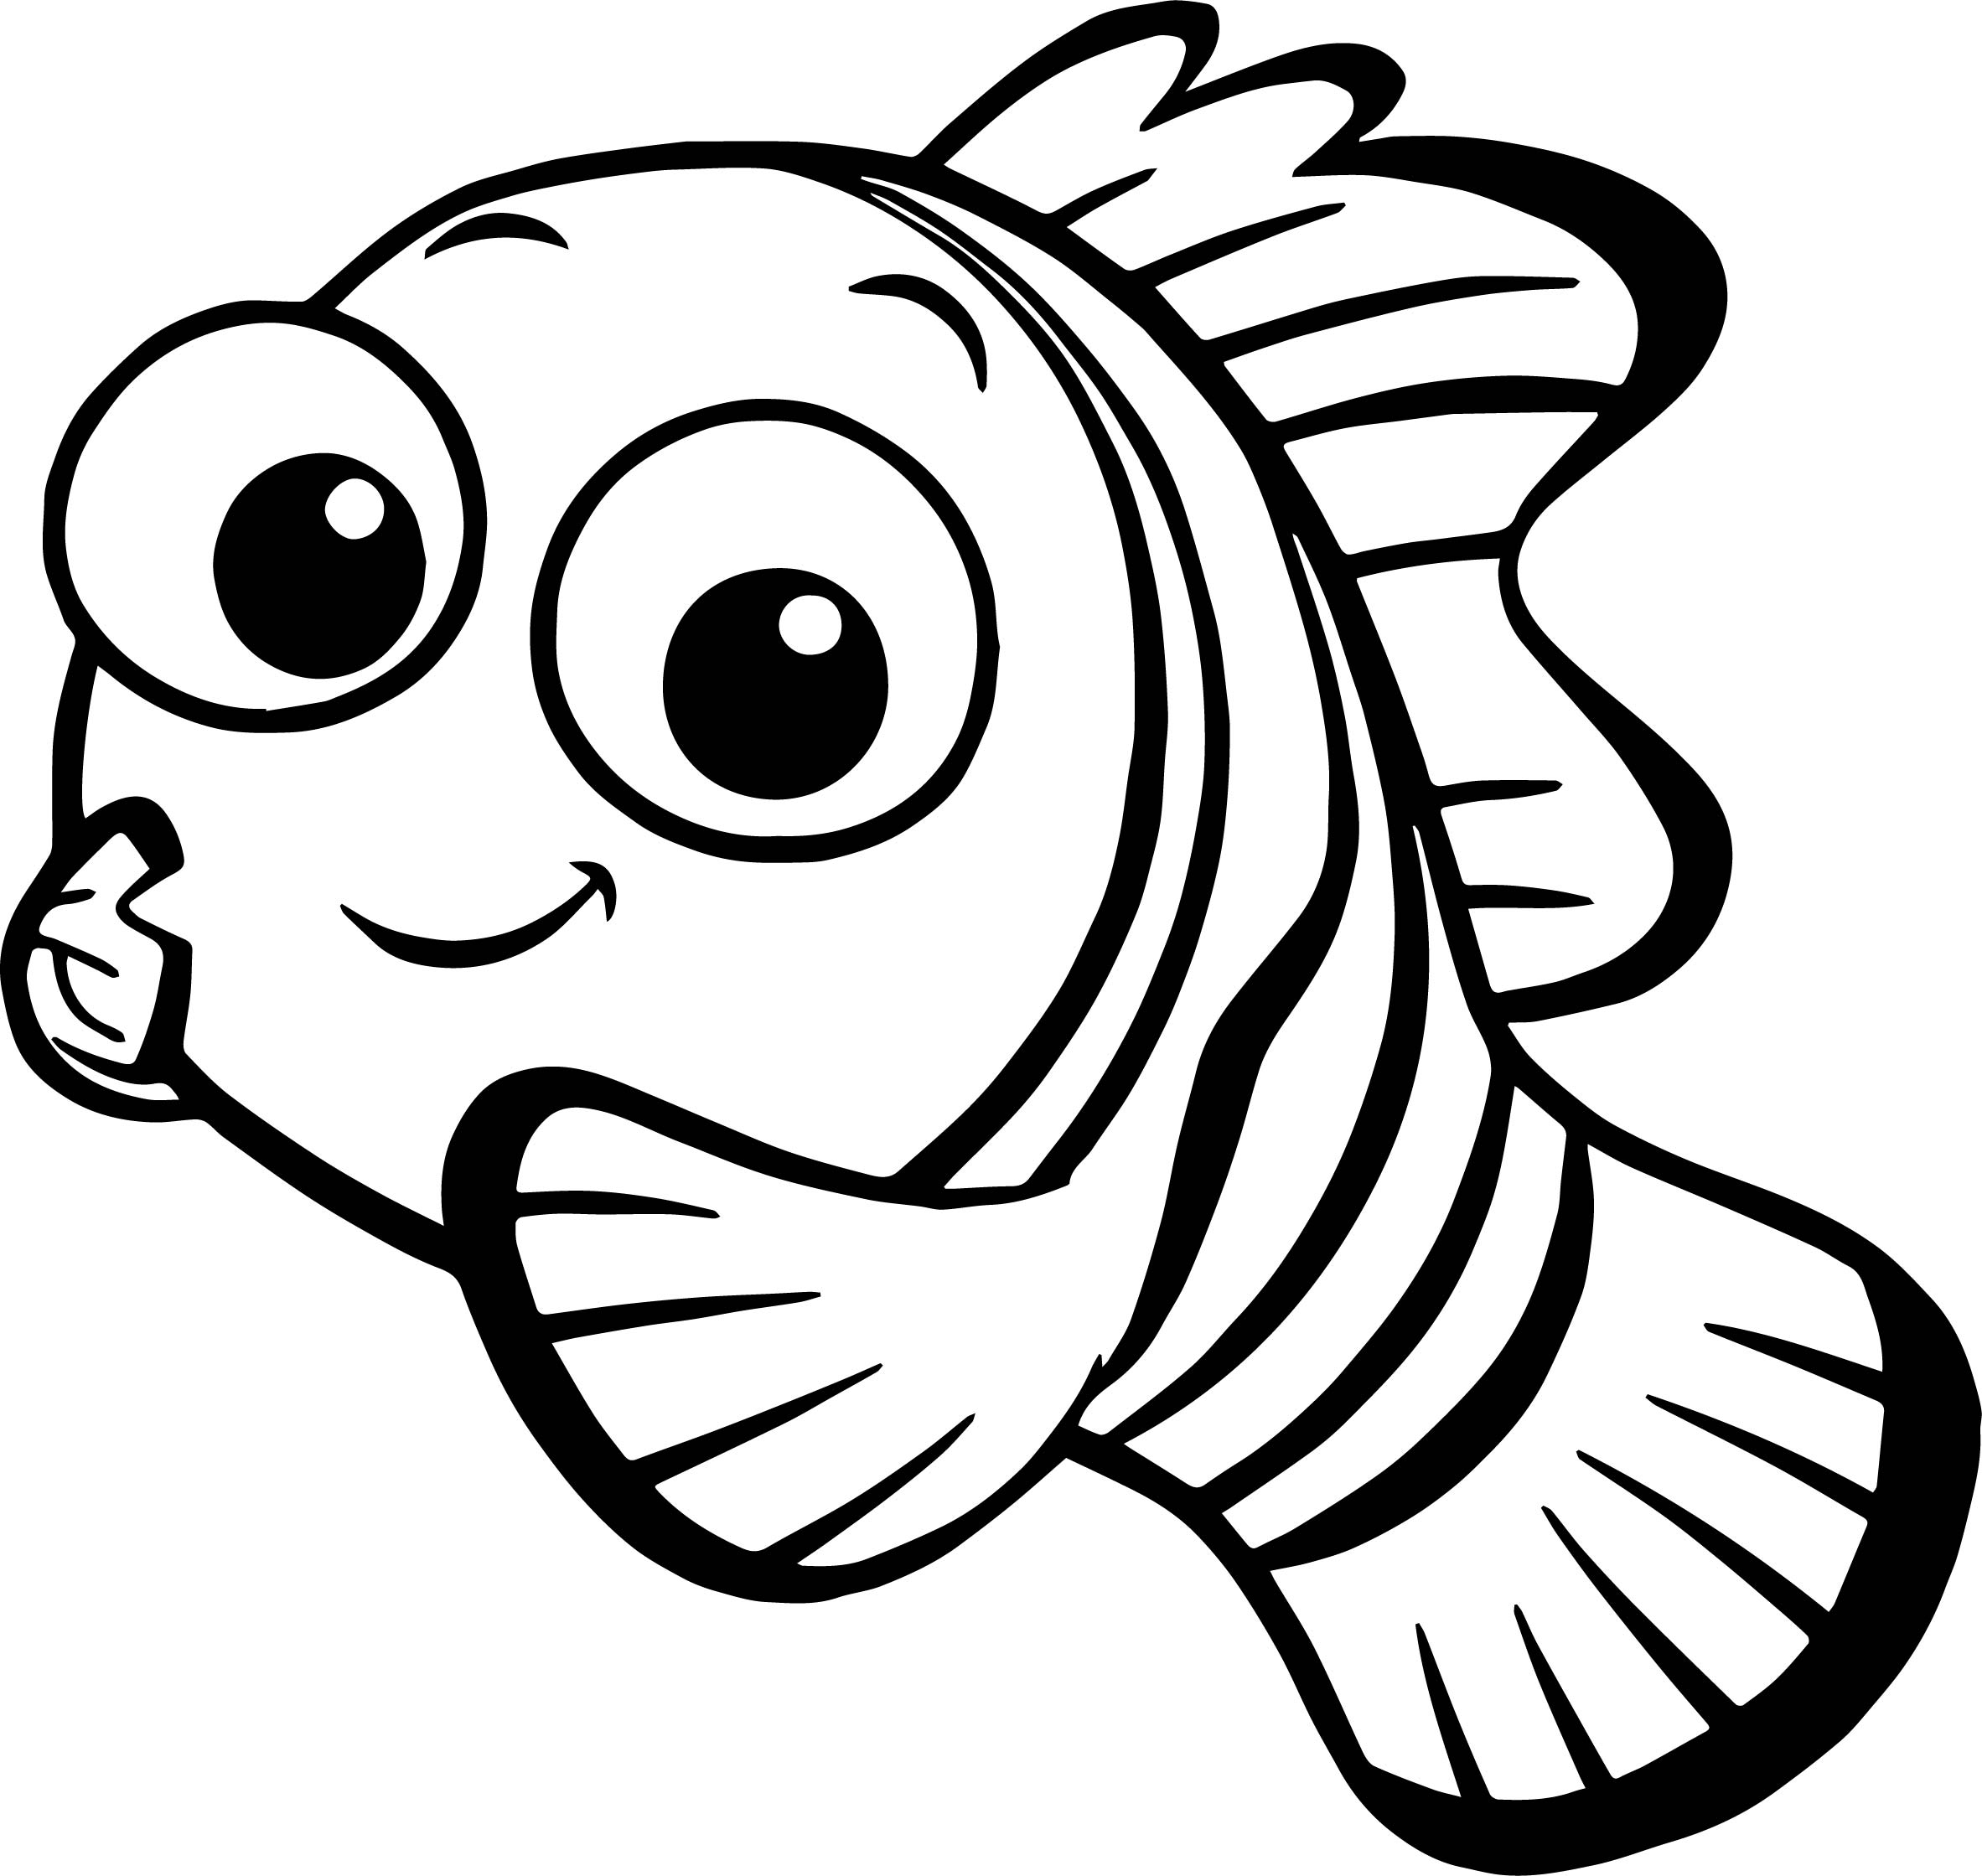 Finding Nemo Coloring Pages Finding Nemo Coloring Pages Coloring Pages For Kids